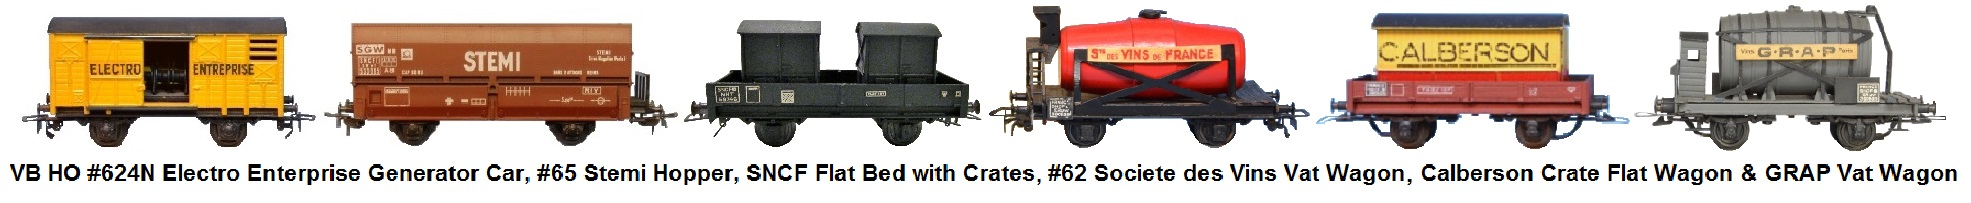 VB HO scale 2 Axle Freight Wagons incudes #624N Electro Enterprise Generator Car, #65 Stemi Hopper, SNCF Platform Wagon with Crates, #62 Societe des Vins Vat Wagon, Calberson Crate Flat and GRAP Vat Wagon